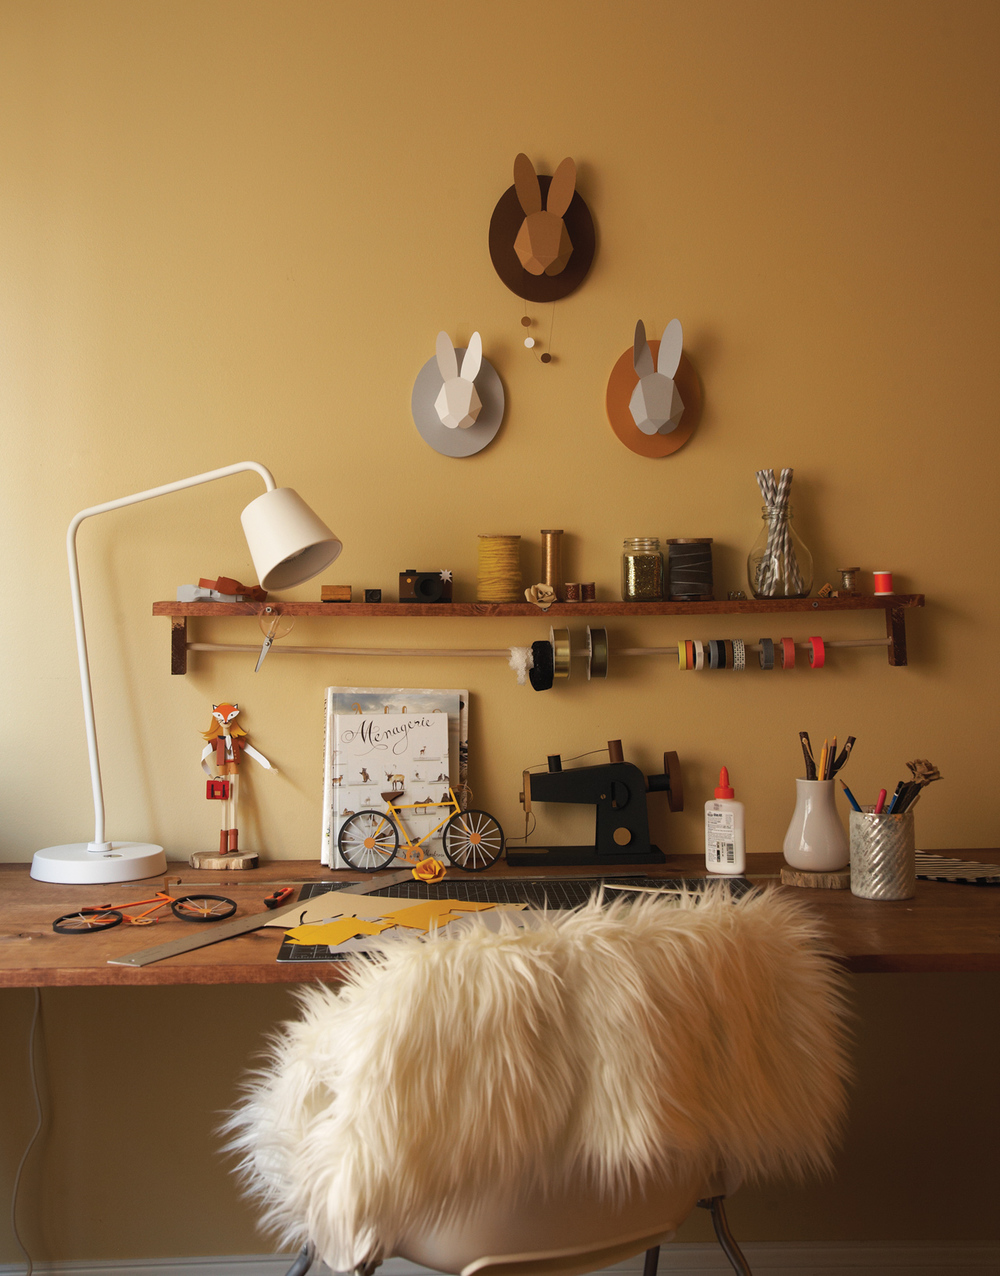 Ilasco_Styling_Anthology-Feury-desk.jpg